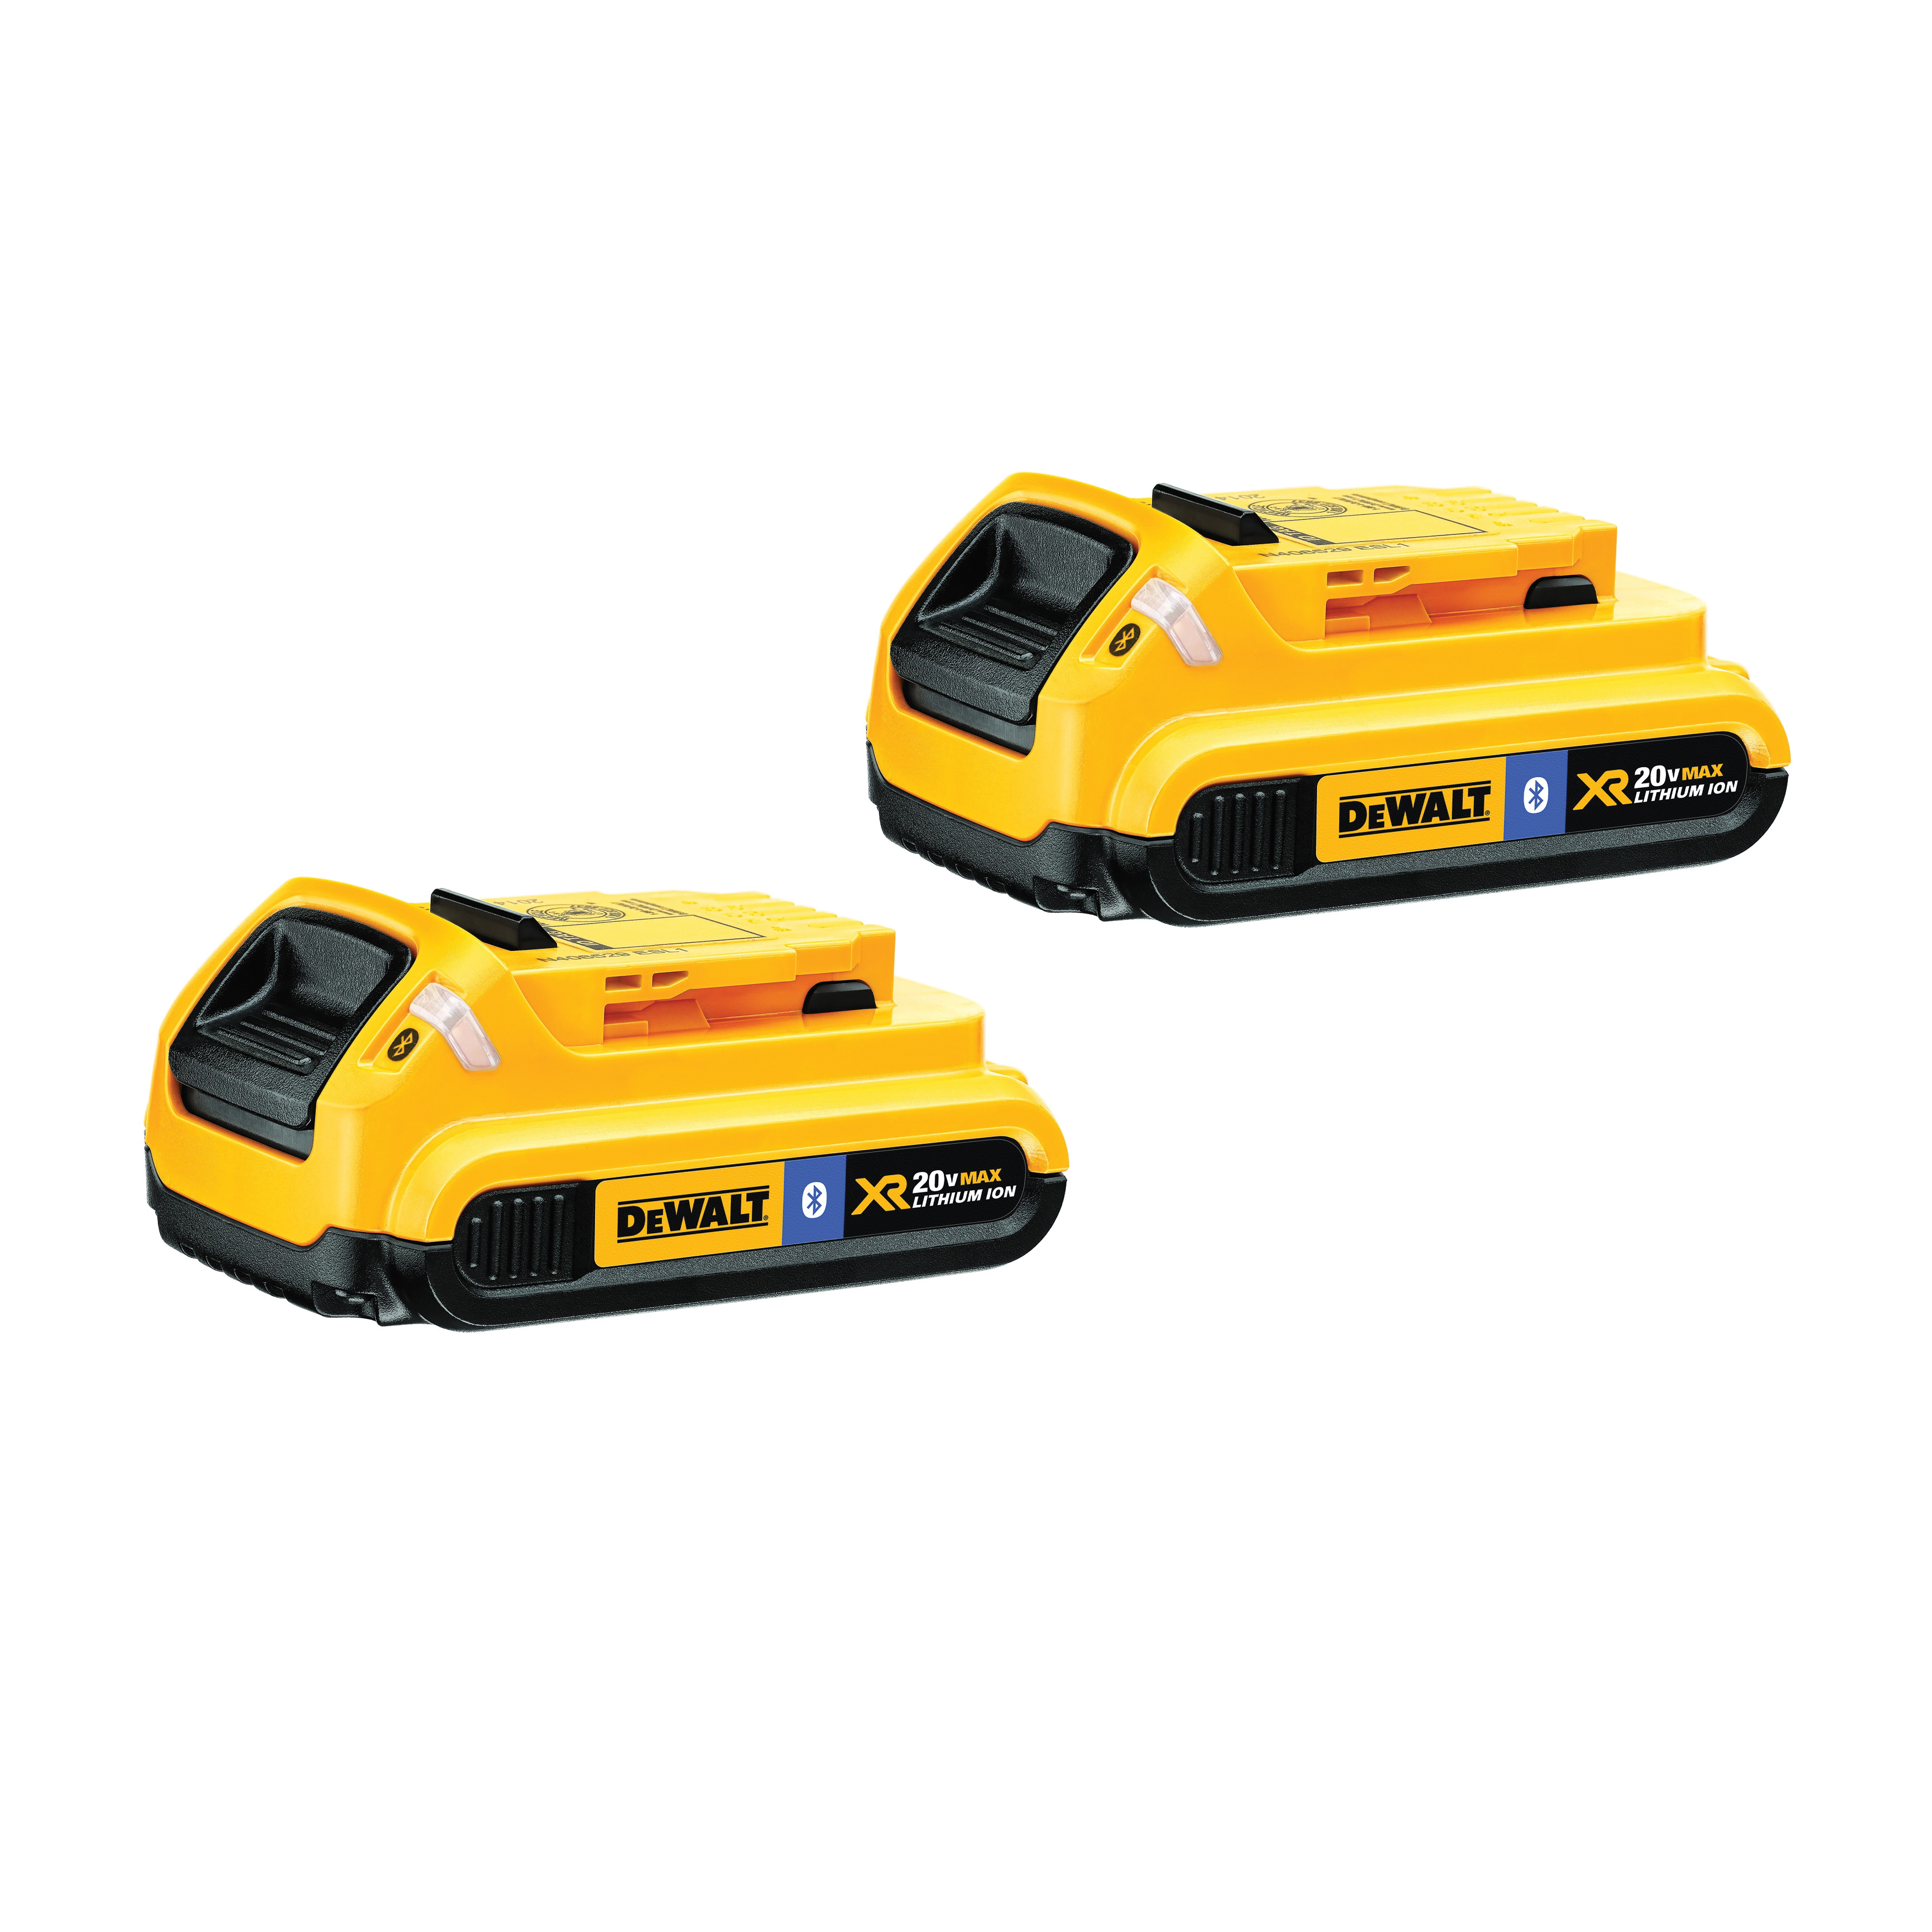 DeWALT® 20V MAX* MATRIX™ DCB203BT-2 2-Piece Slide With Bluetooth, 2 Ah Lithium-Ion Battery, 20 VDC Charge, For Use With DeWALT® 20 V MAX TMAX